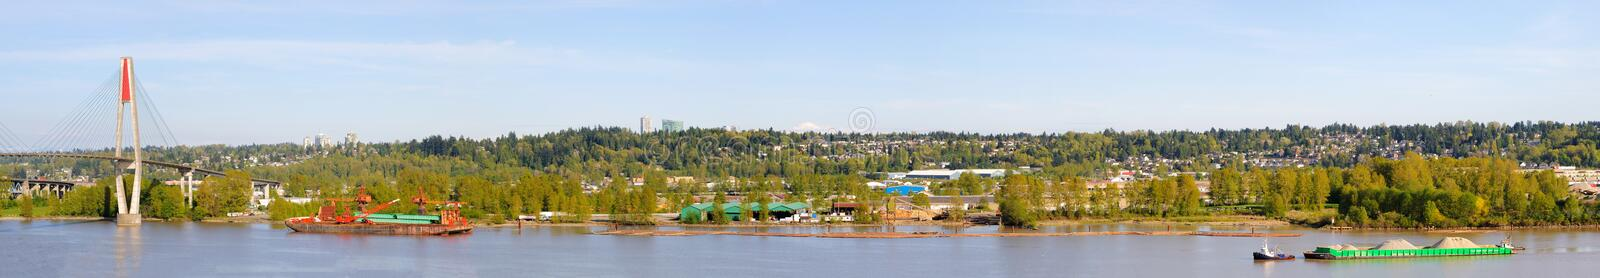 Panorama of fraser river. New westminster,british columbia stock photos